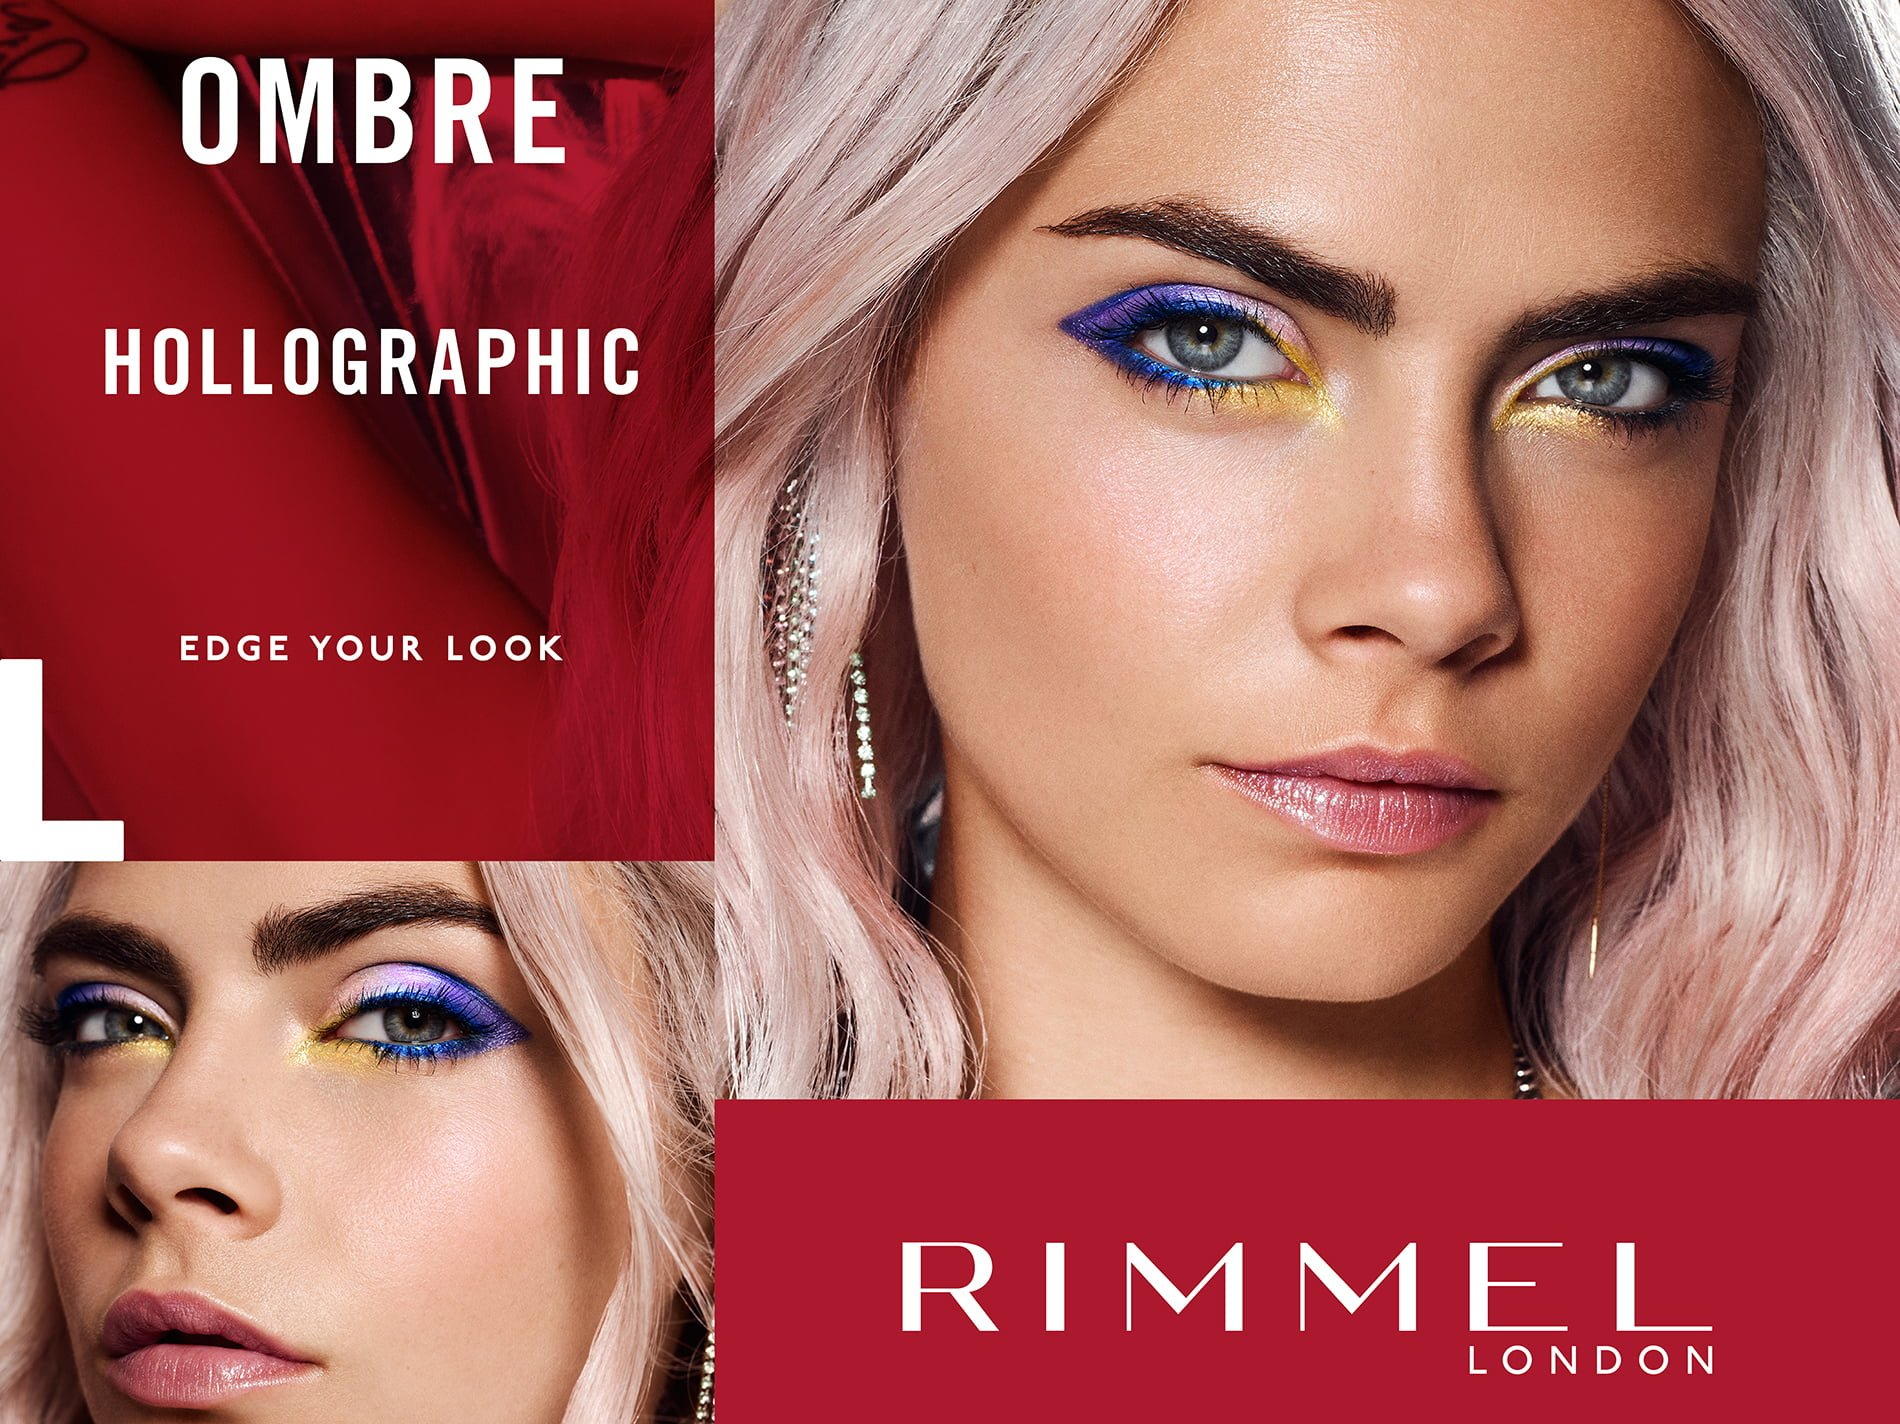 women modelling rimmel london ombre hollographic make up